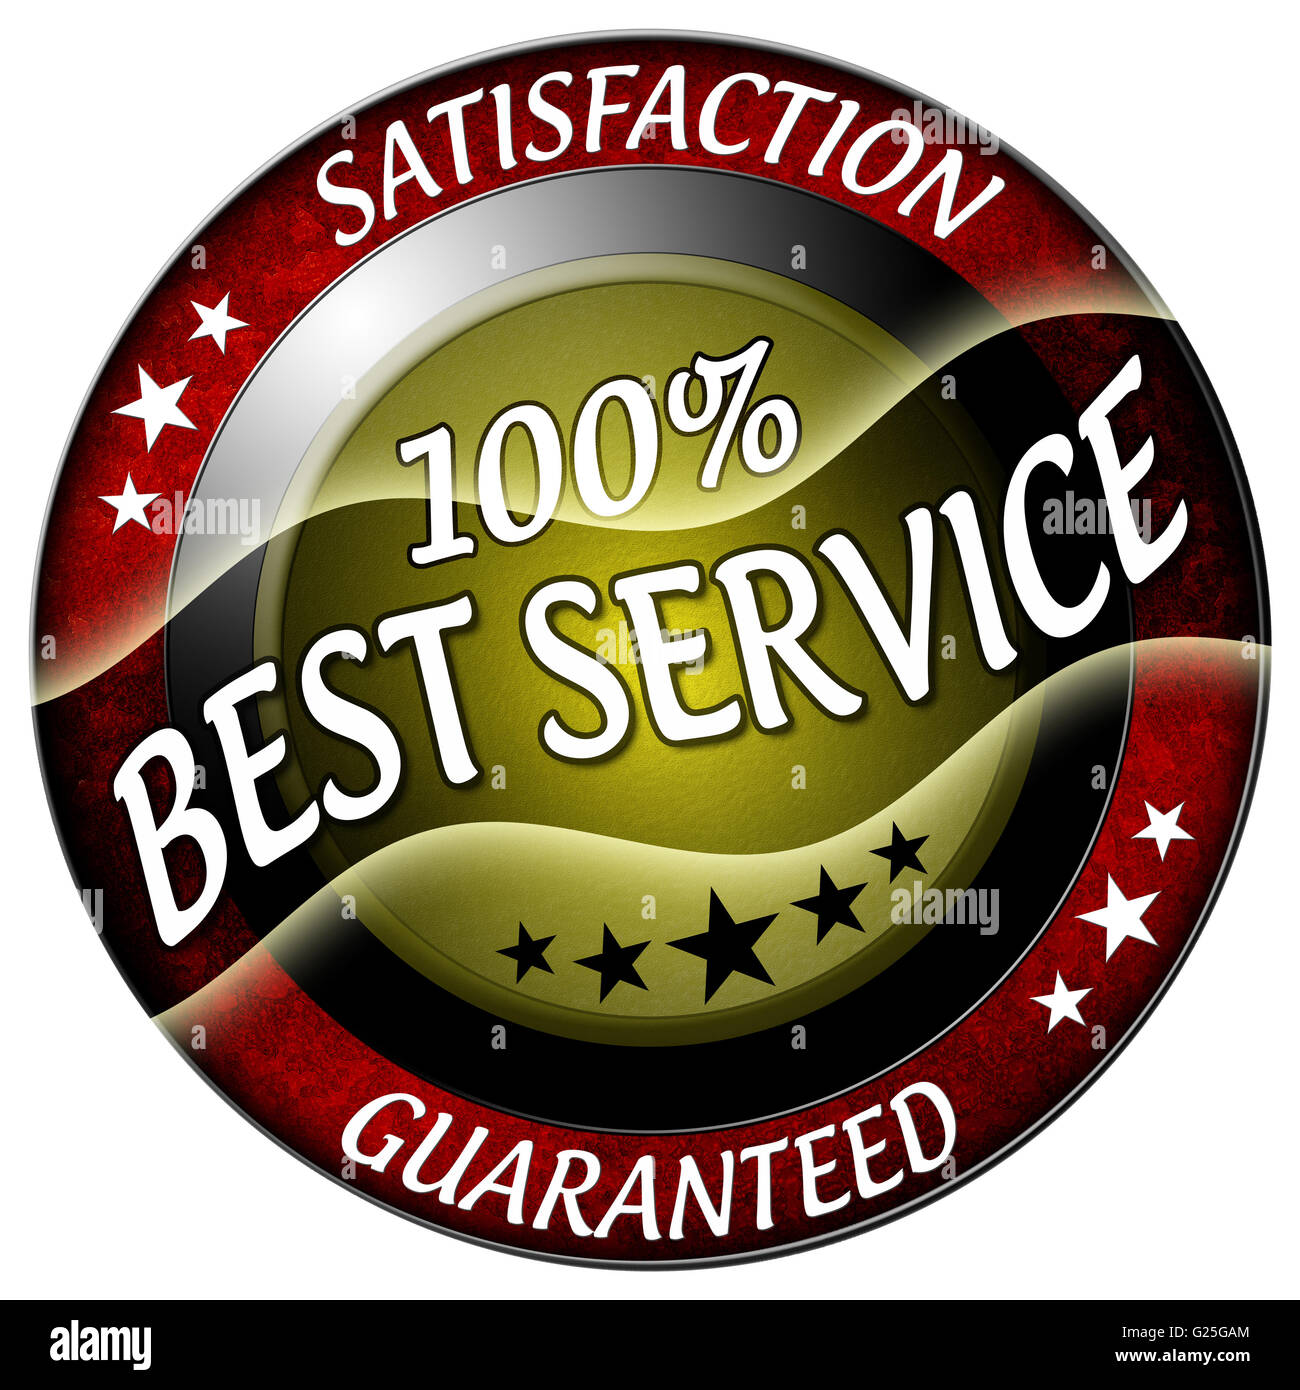 best service round red icon isolated - Stock Image